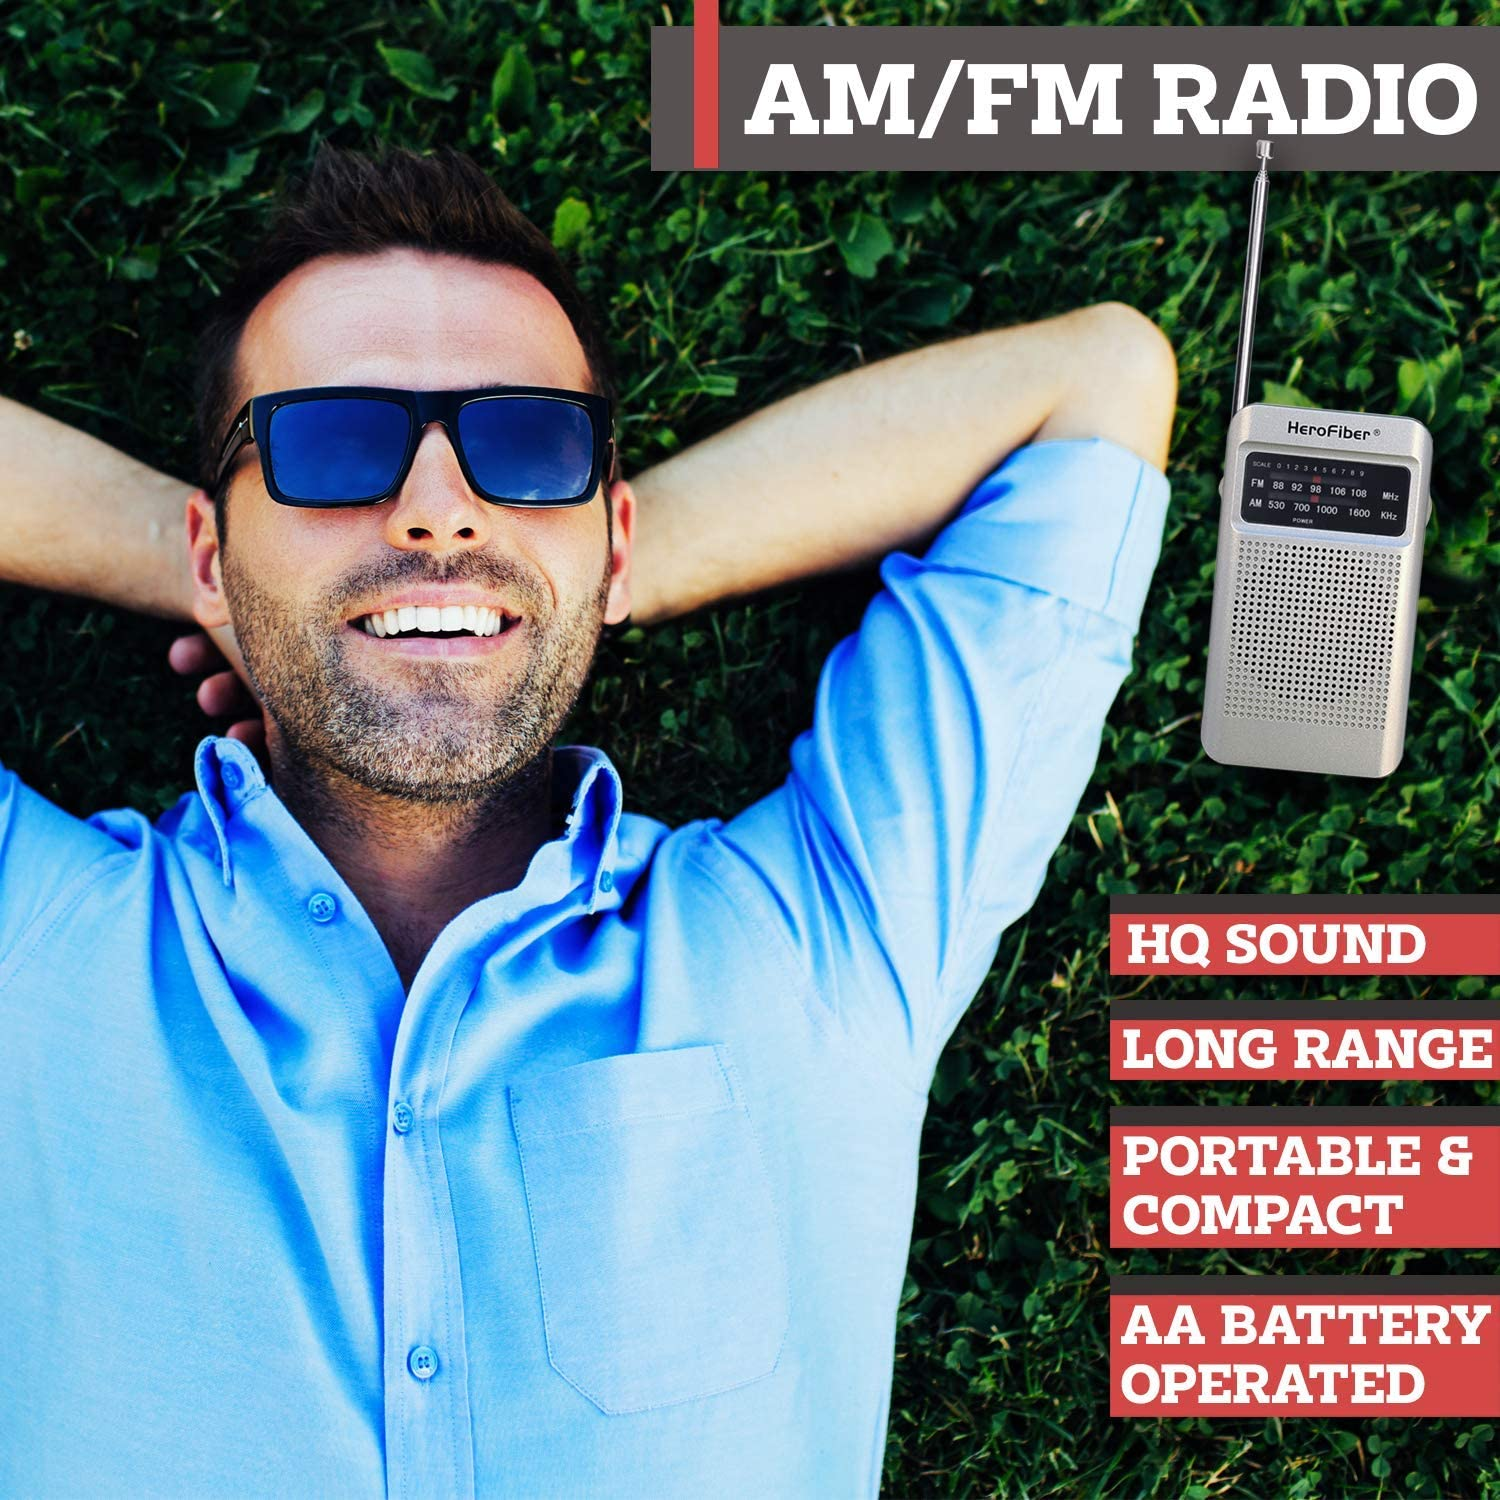 AM FM Radio w//Earphones 4 Portable Lanterns -Batteries Incl Transistor Radio is Small both are AA Battery Operated f//Hiking Collapsible Camping Lamp has Super Bright Light Power Outage Compact